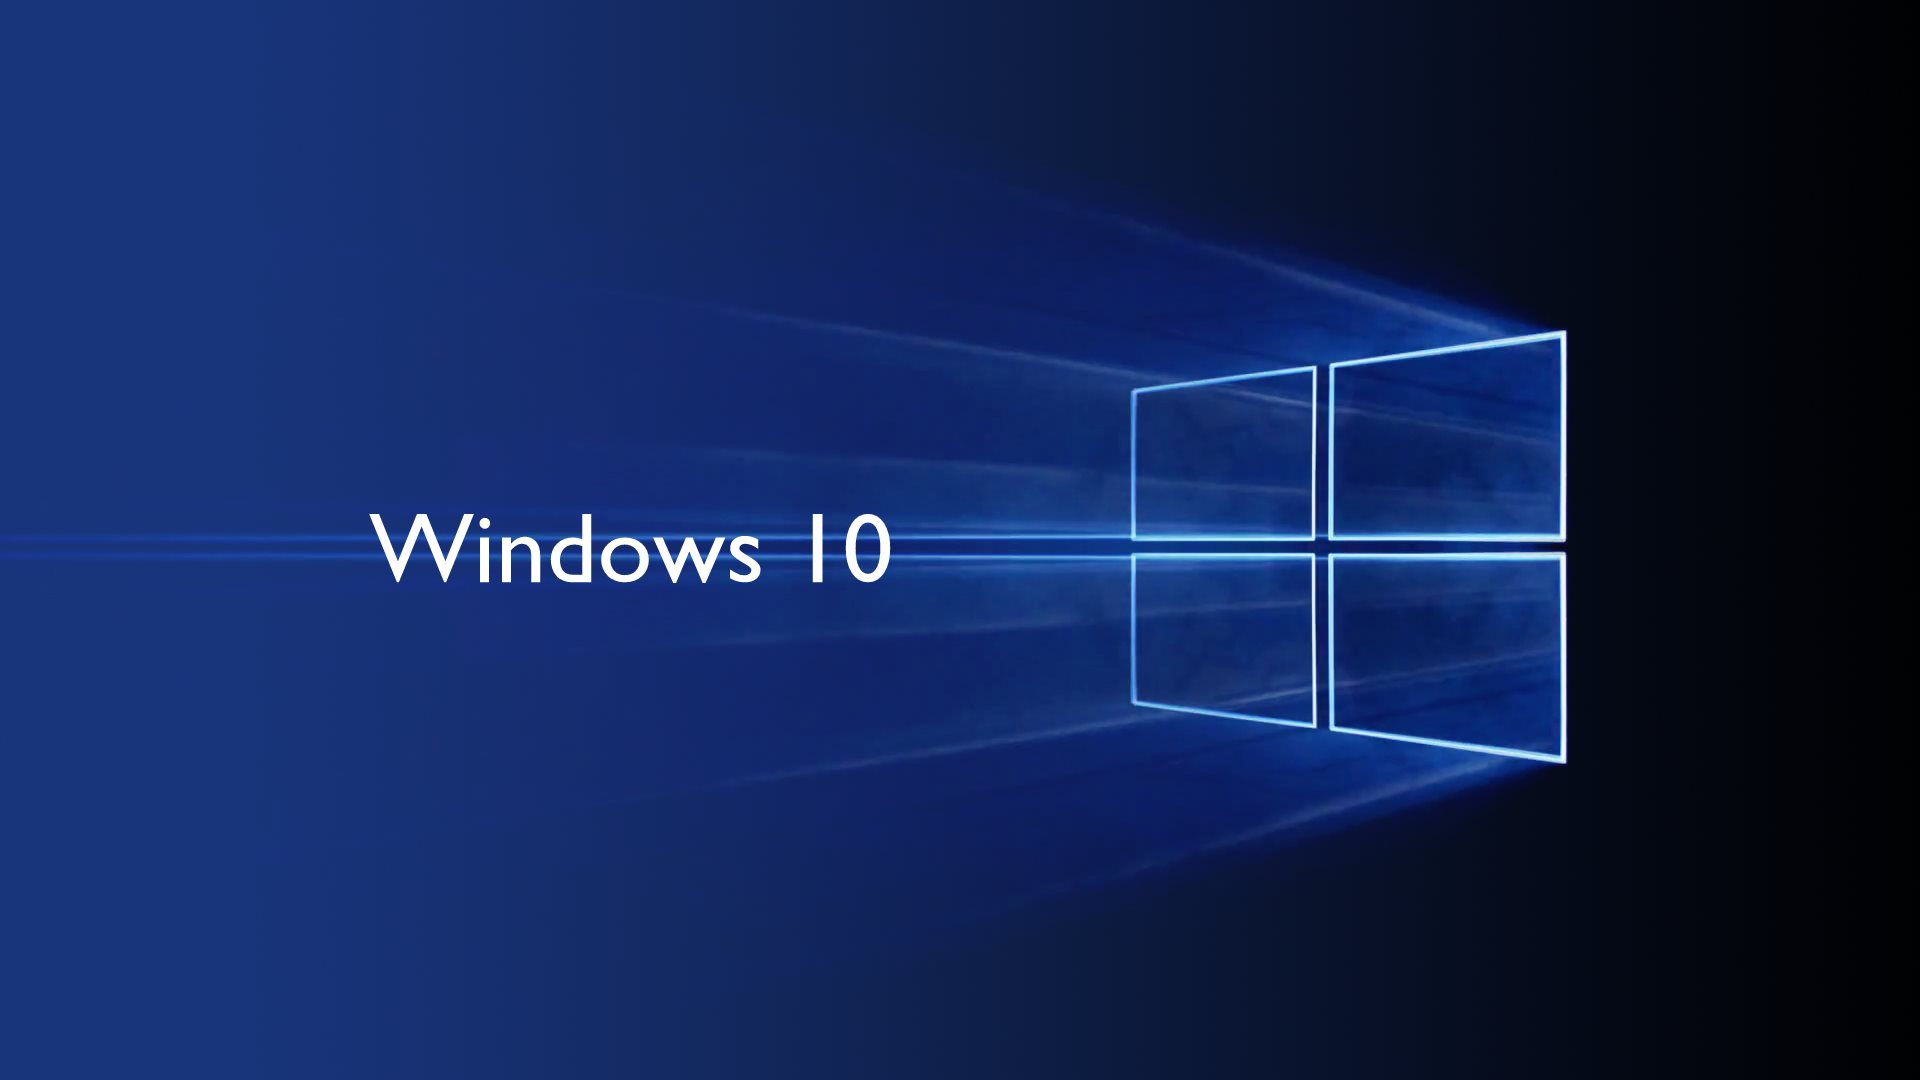 Windows 10 riceve la ventunesima patch